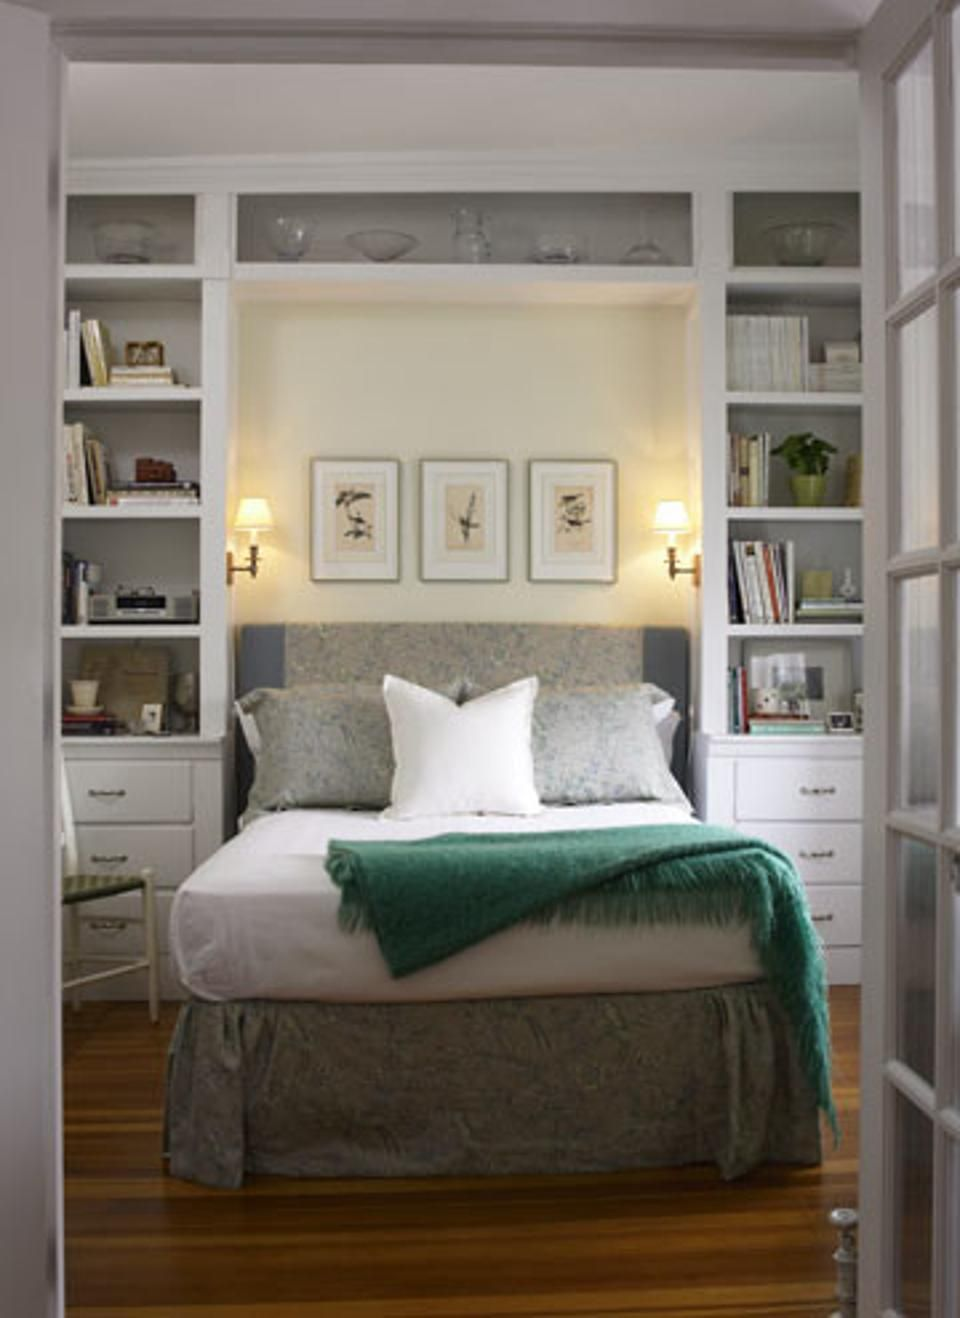 10 Tips To Make A Small Bedroom Look Great. Bedroom ShelvingBedroom Storage  ...